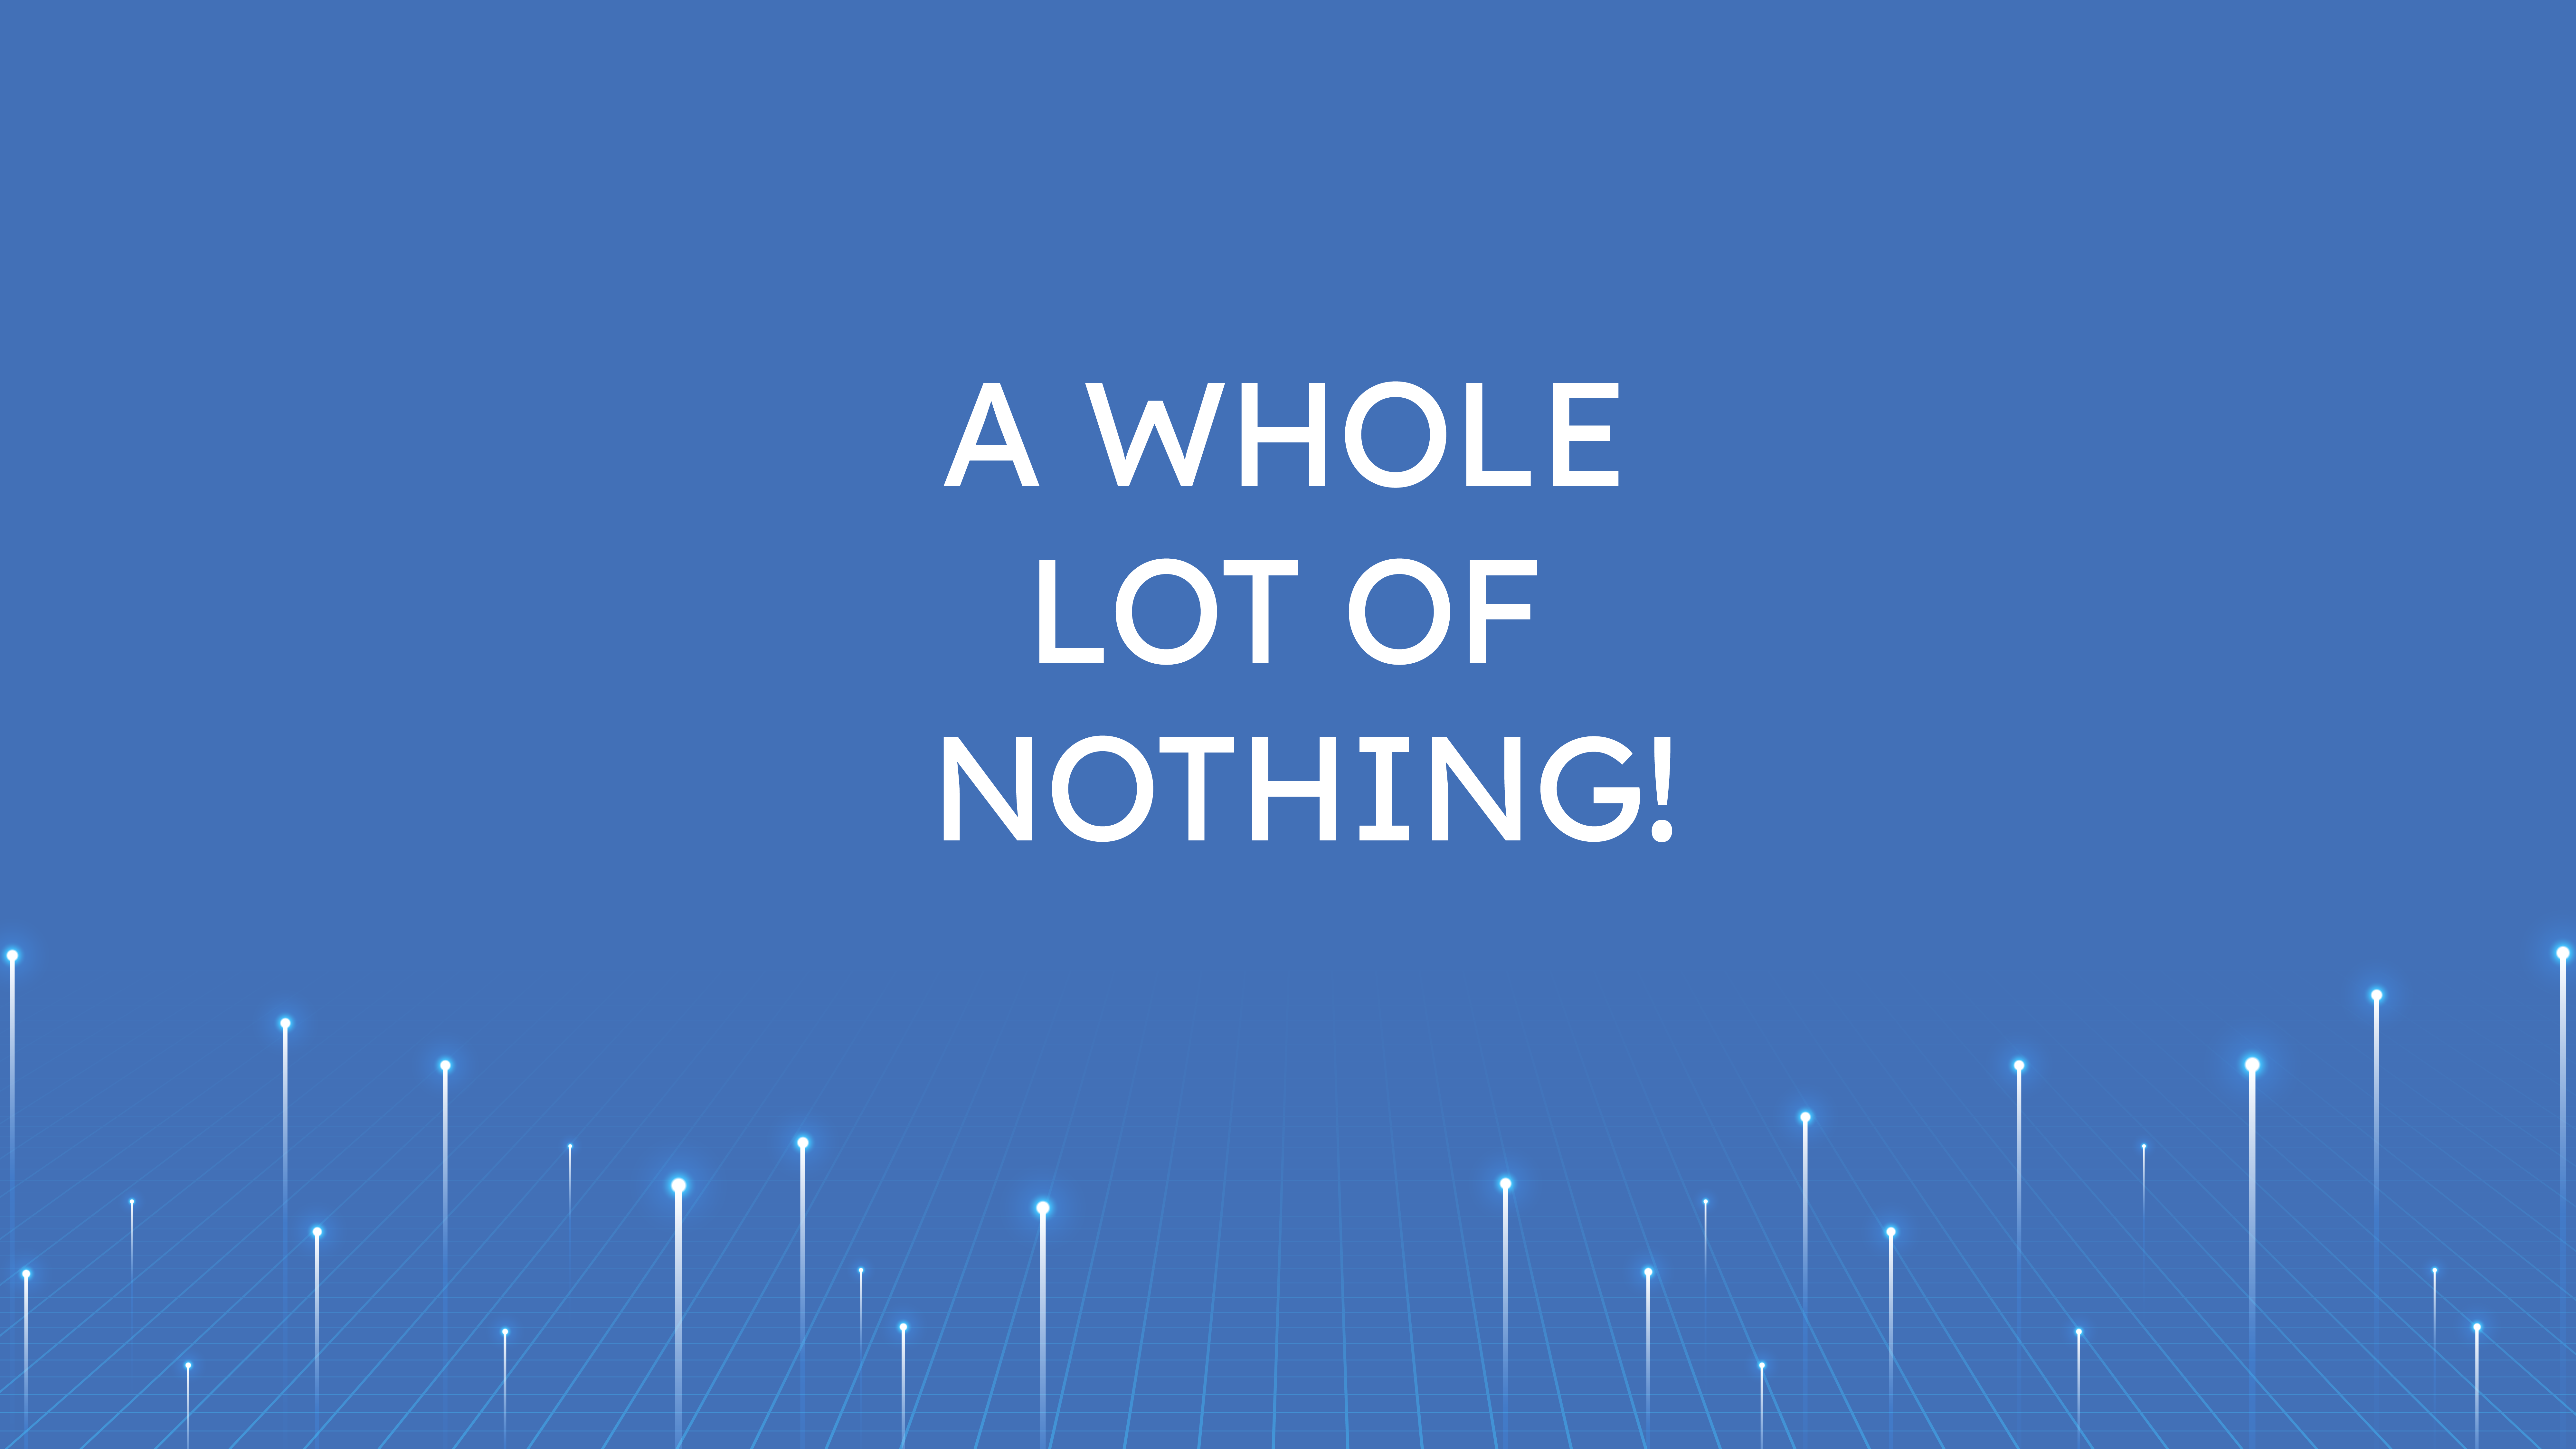 A Whole Lot  of Nothing!